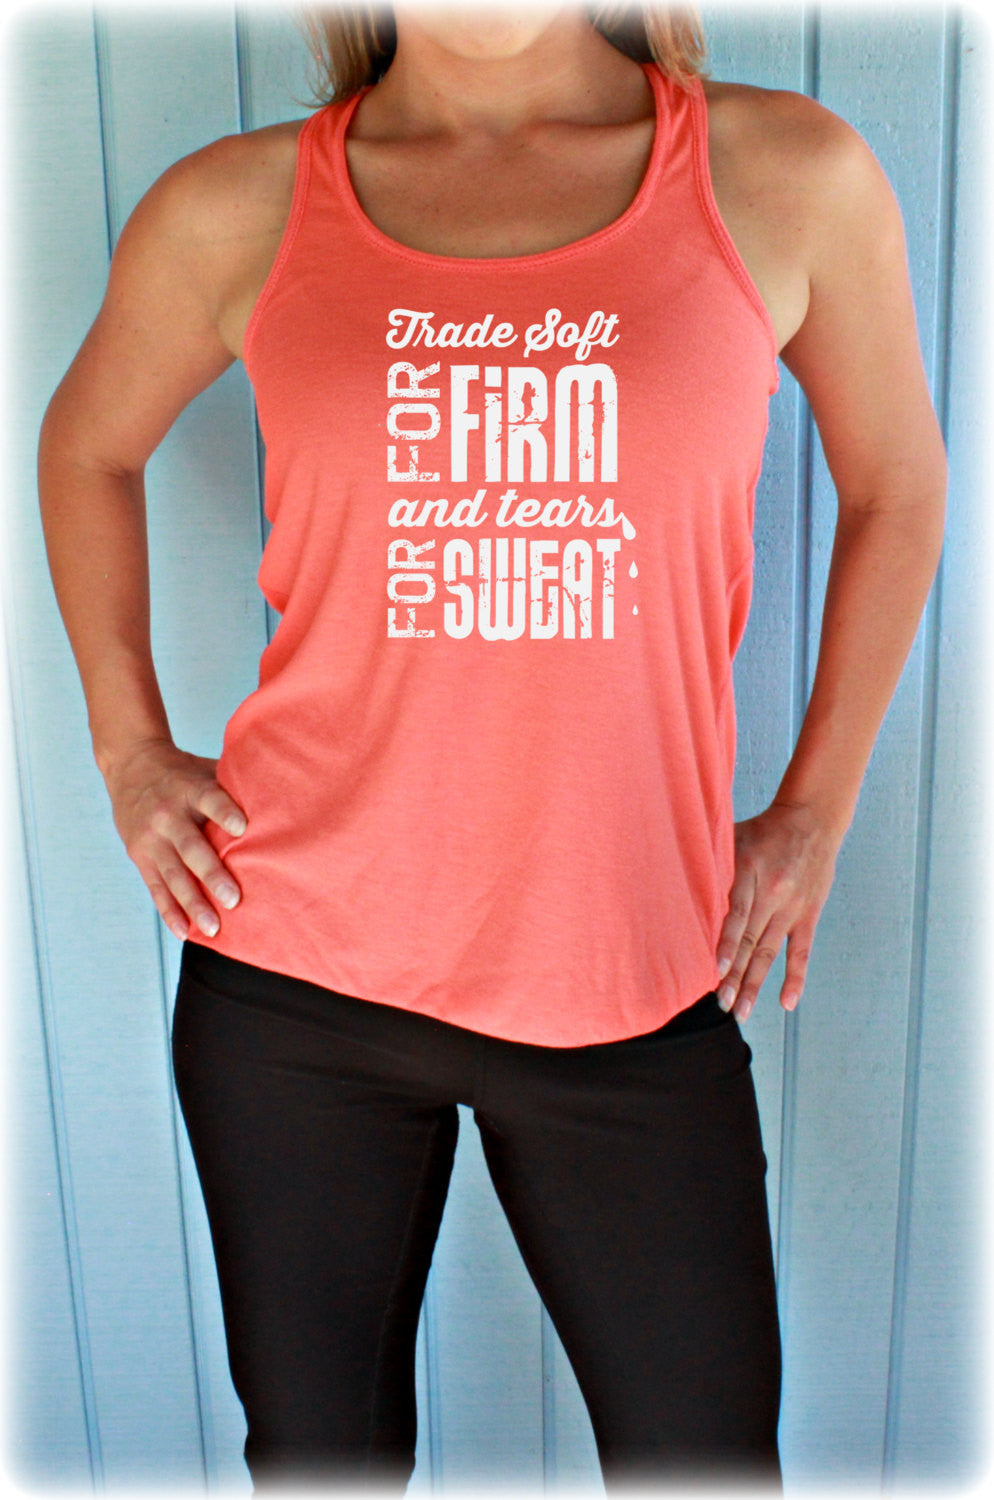 Flowy Fitness Tank Top. Workout Tanks for Women. Trade Soft 4 Firm. Tears 4 Sweat. Gym Motivation. Cute Workout Clothes. Motivational Tank